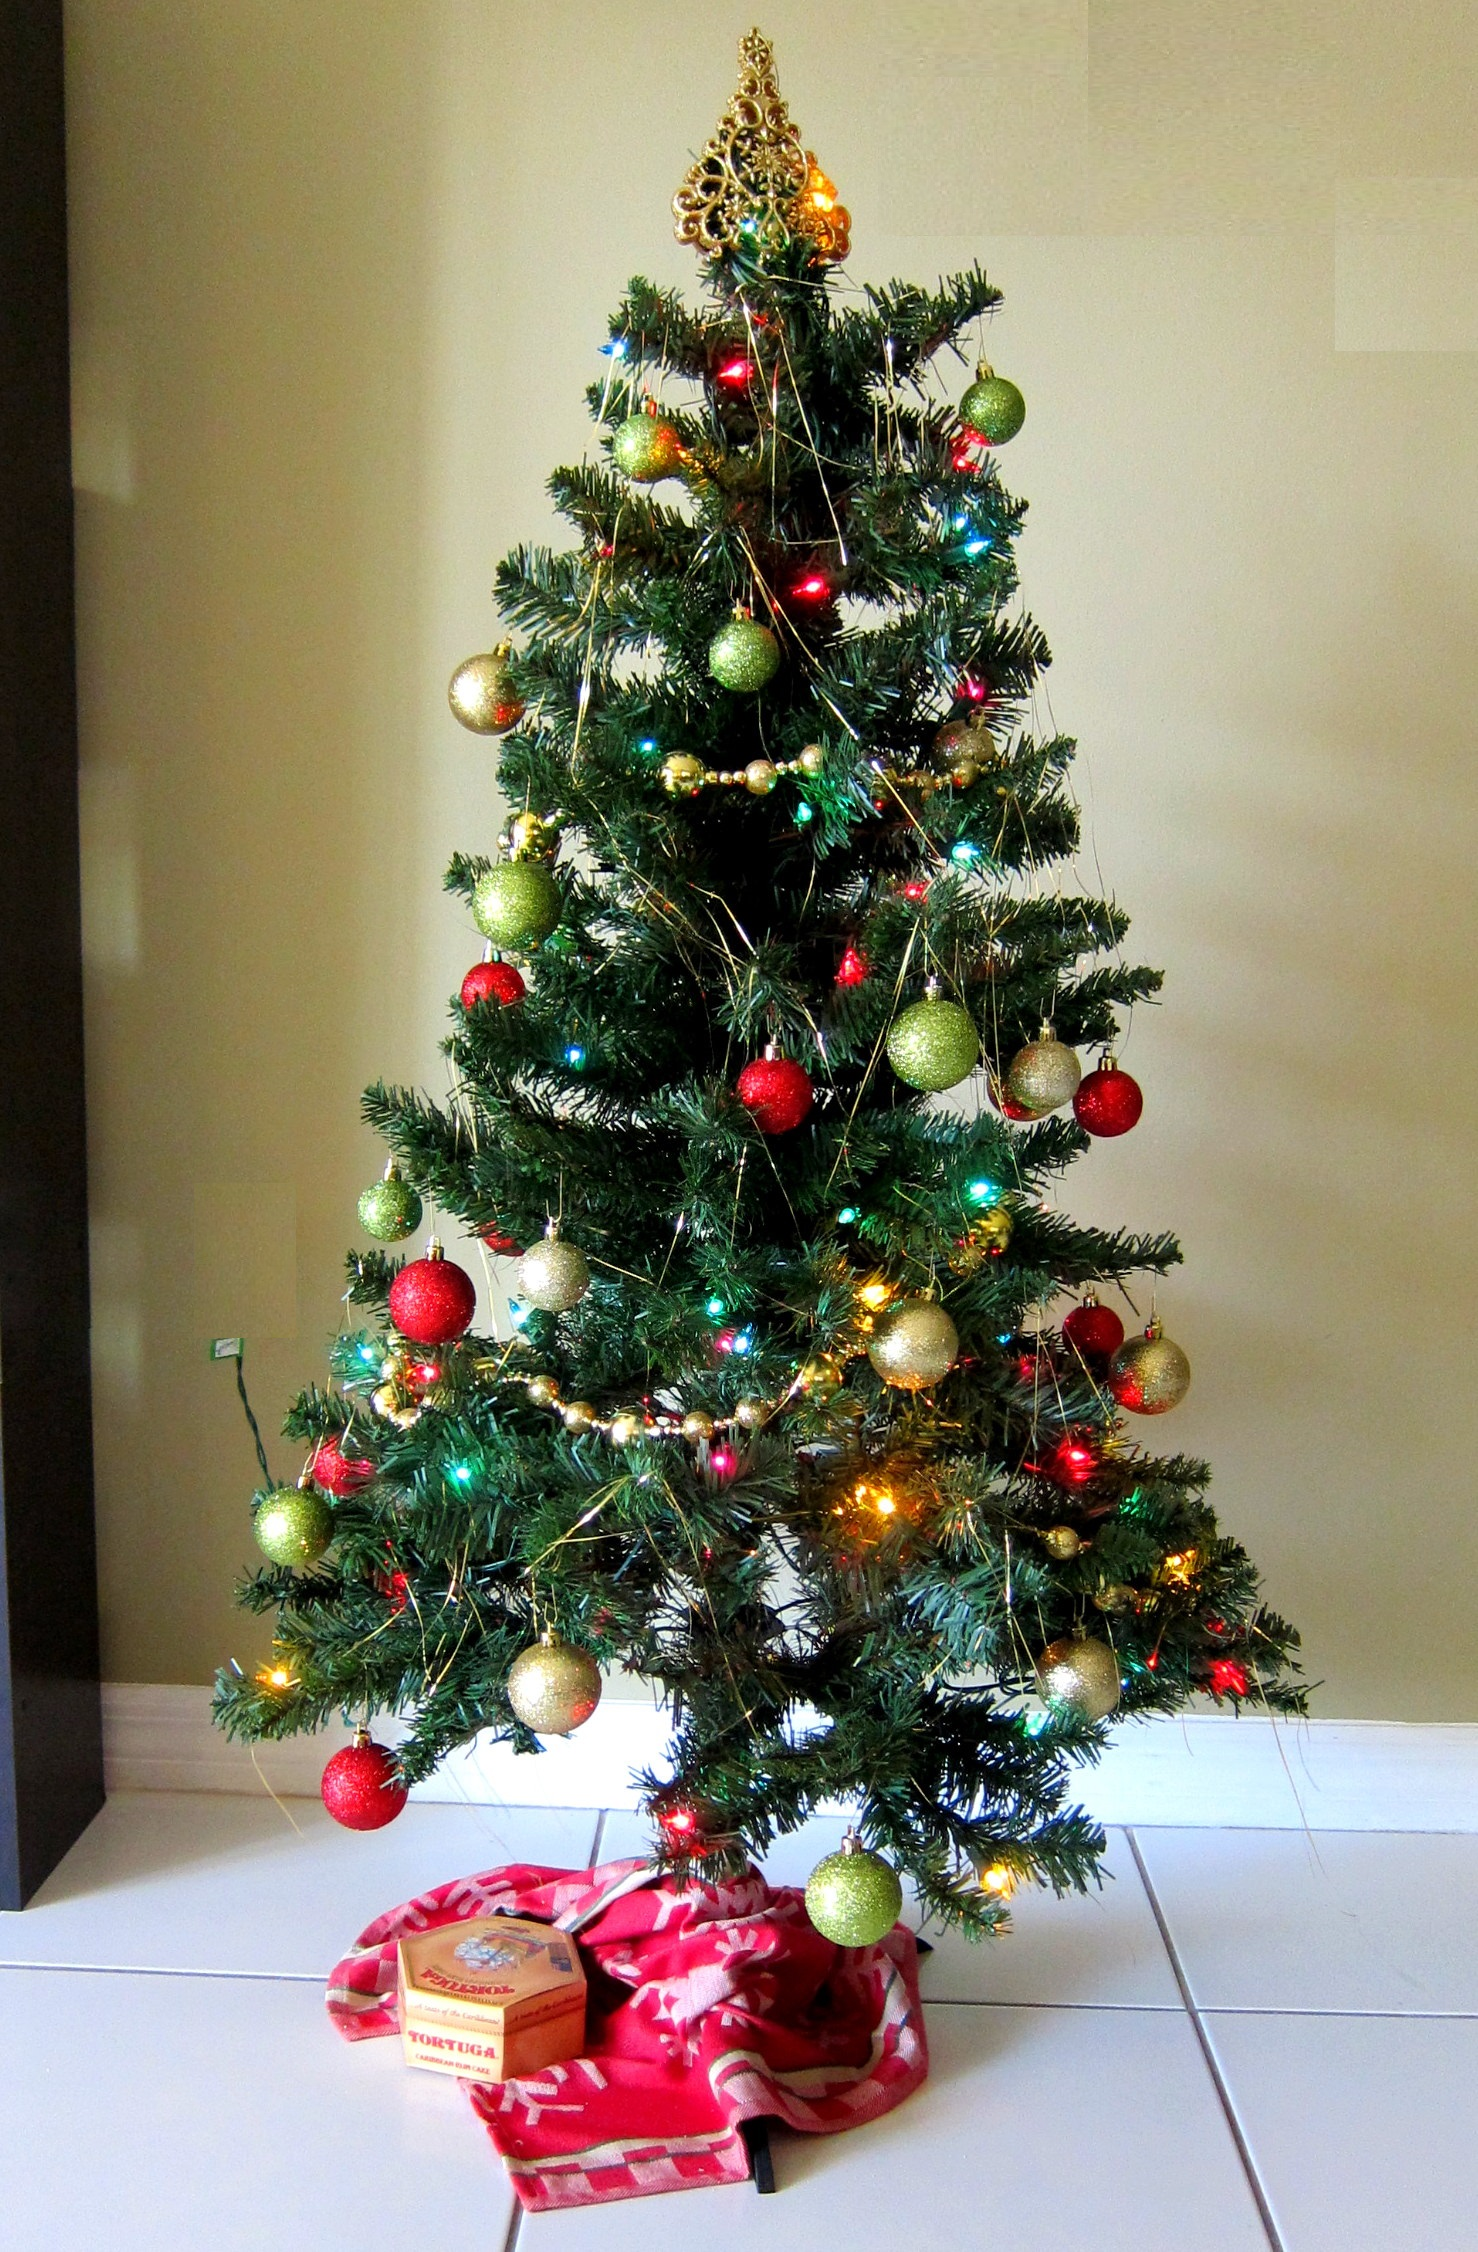 A Little Christmas Tree Home Thoughts From Abroad